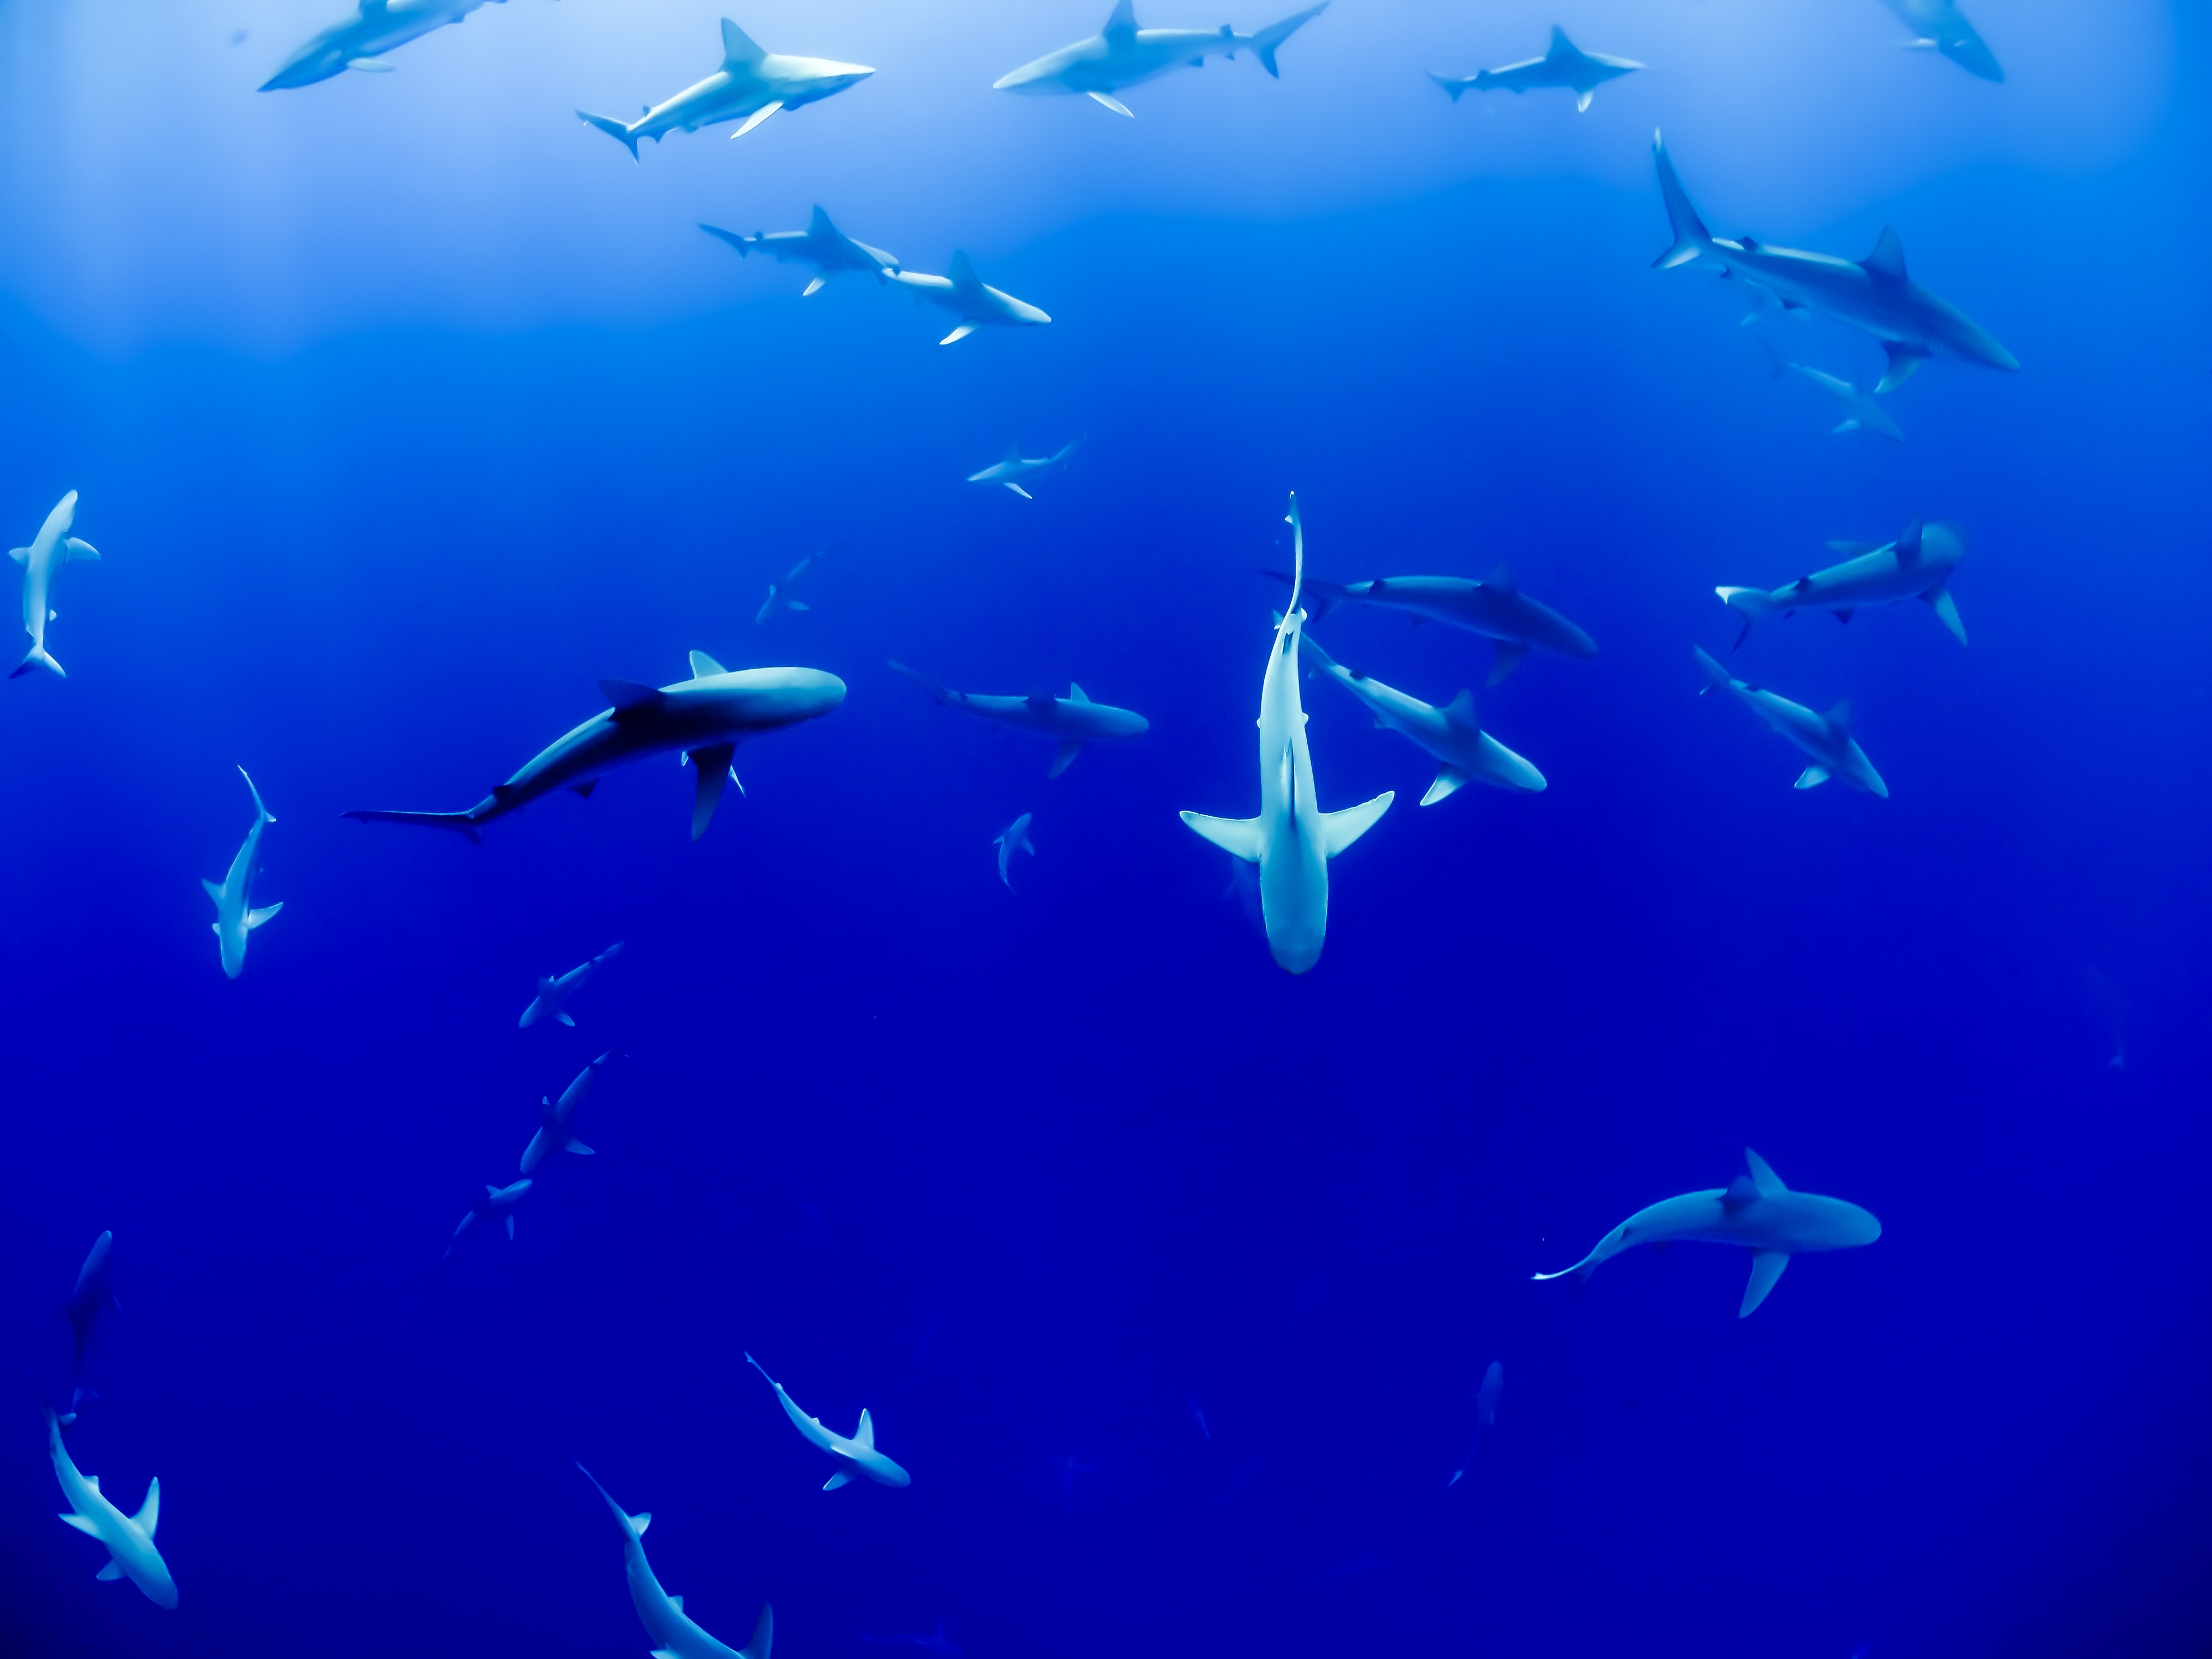 A large group of sharks in deep blue water